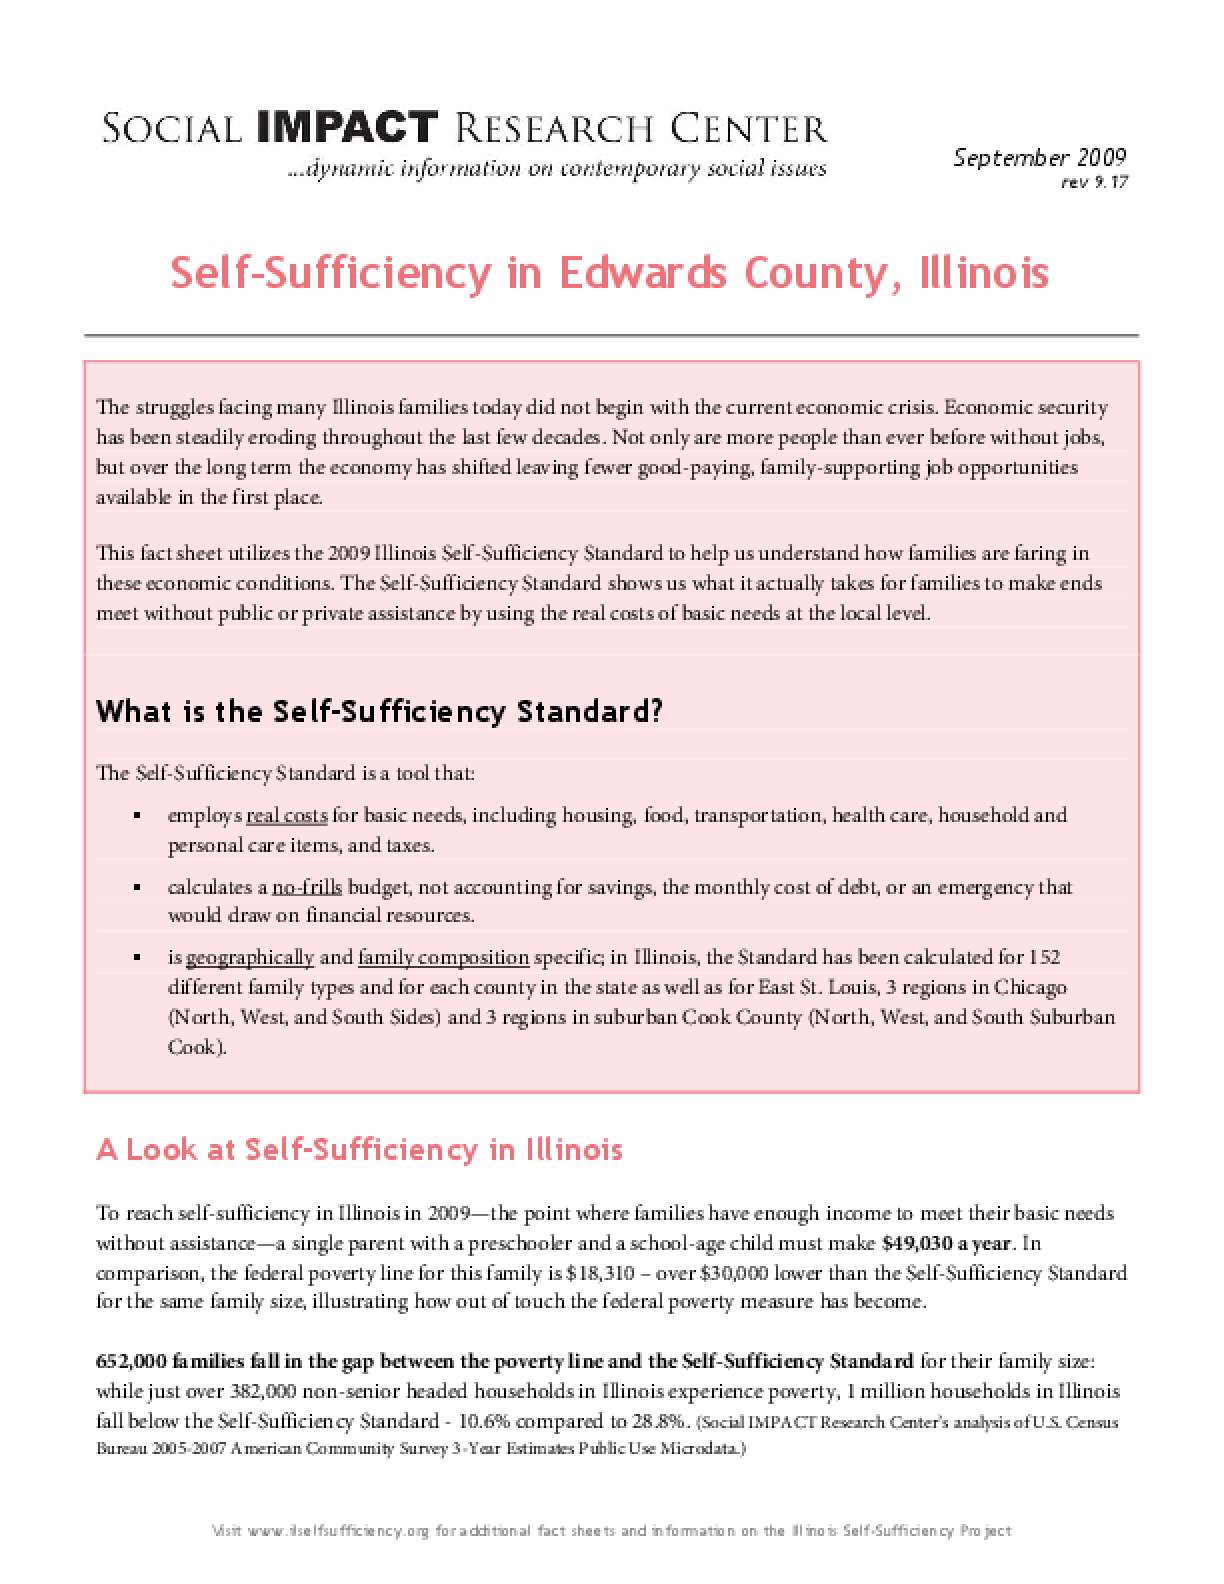 Self-Sufficiency in Edwards County, Illinois